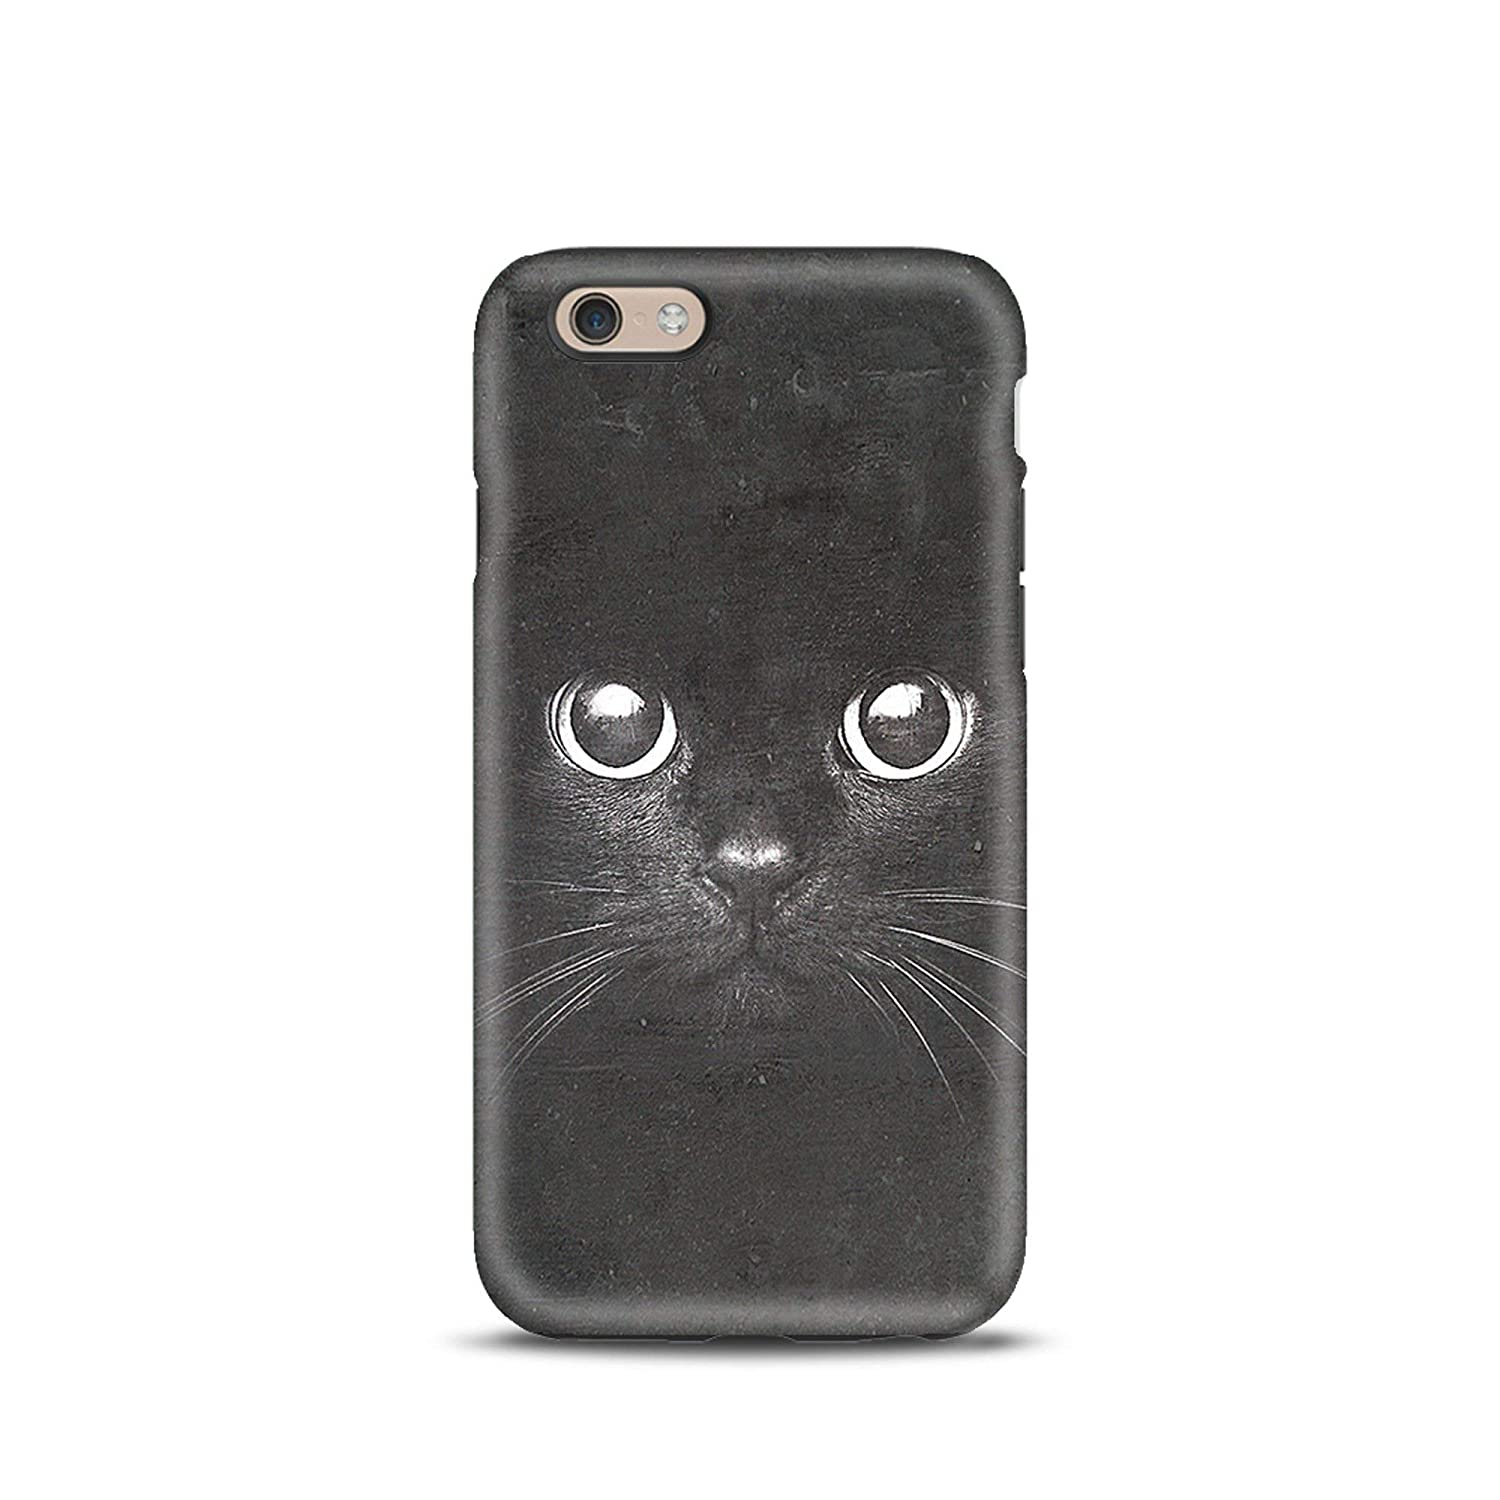 Black Cat cover case TPU Tough for iPhone 5, 5s, 6, 6s, 7, 7 plus, 8, 8 plus, X, XS, for Galaxy S6, S7, S8